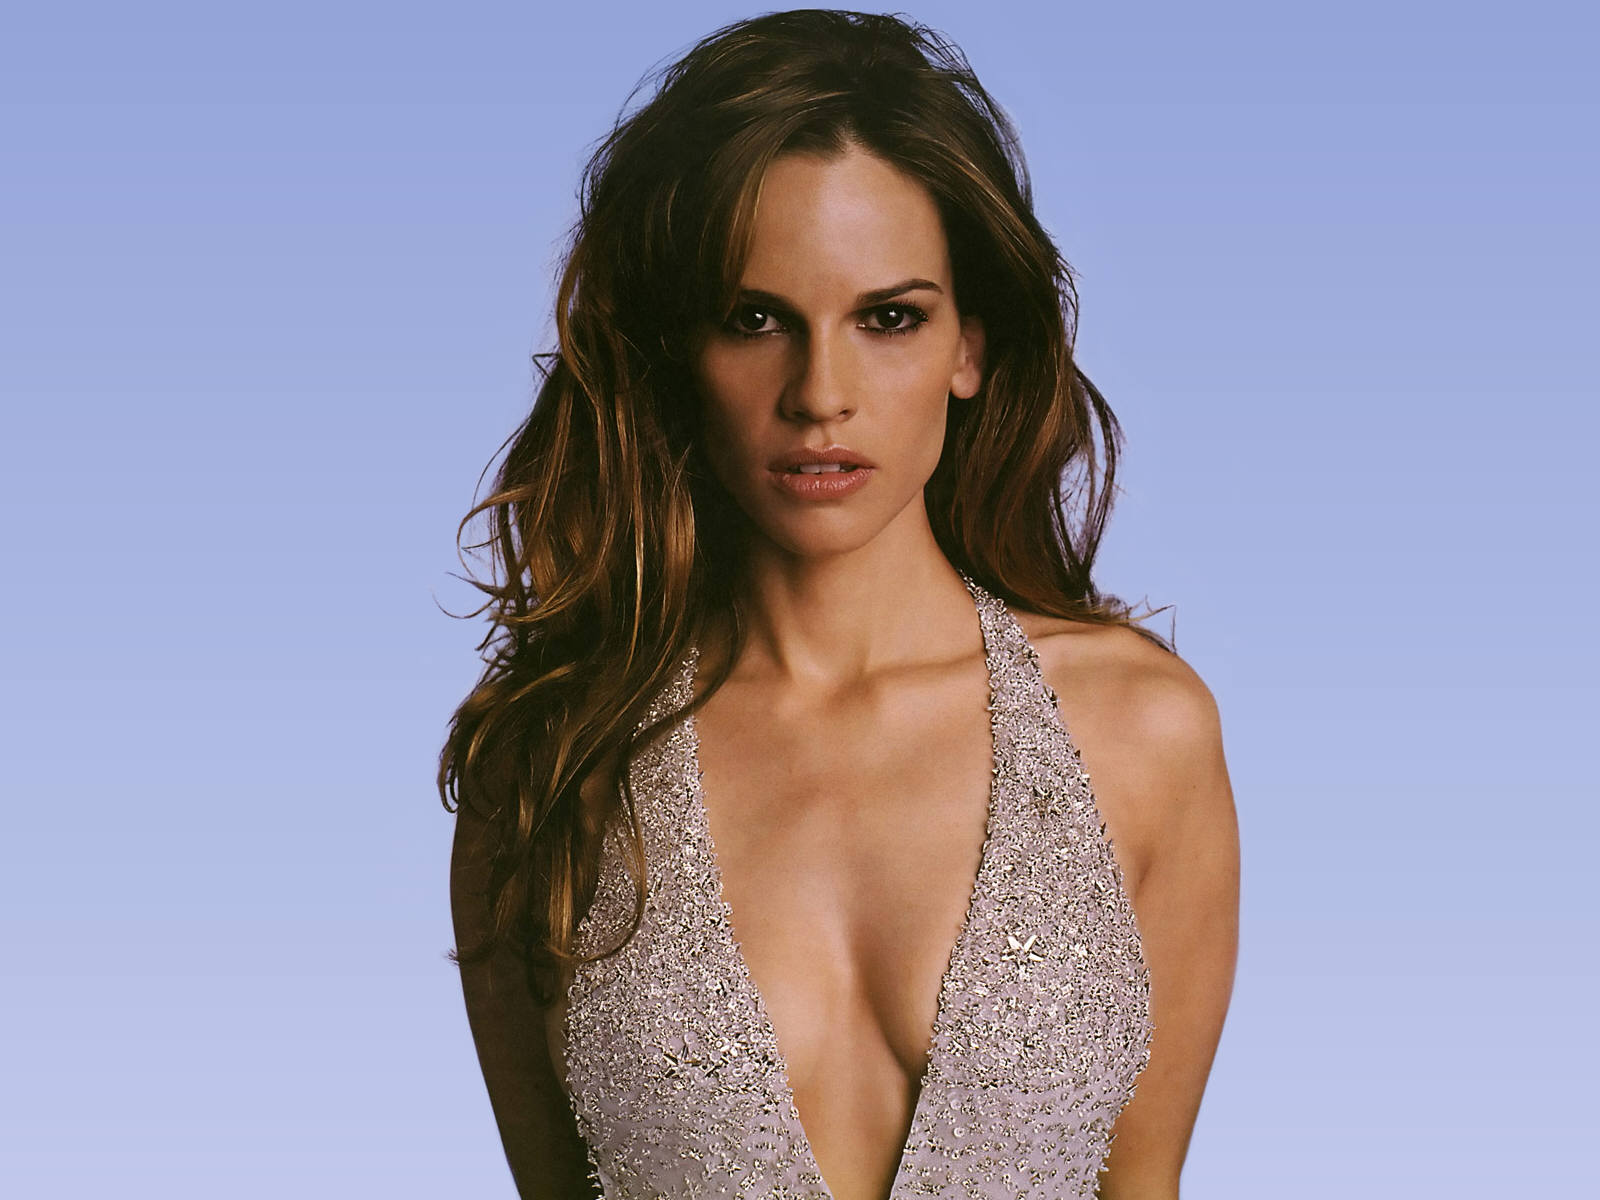 Hilary - Hilary Swank Wallpaper (253927) - Fanpop fanclubs